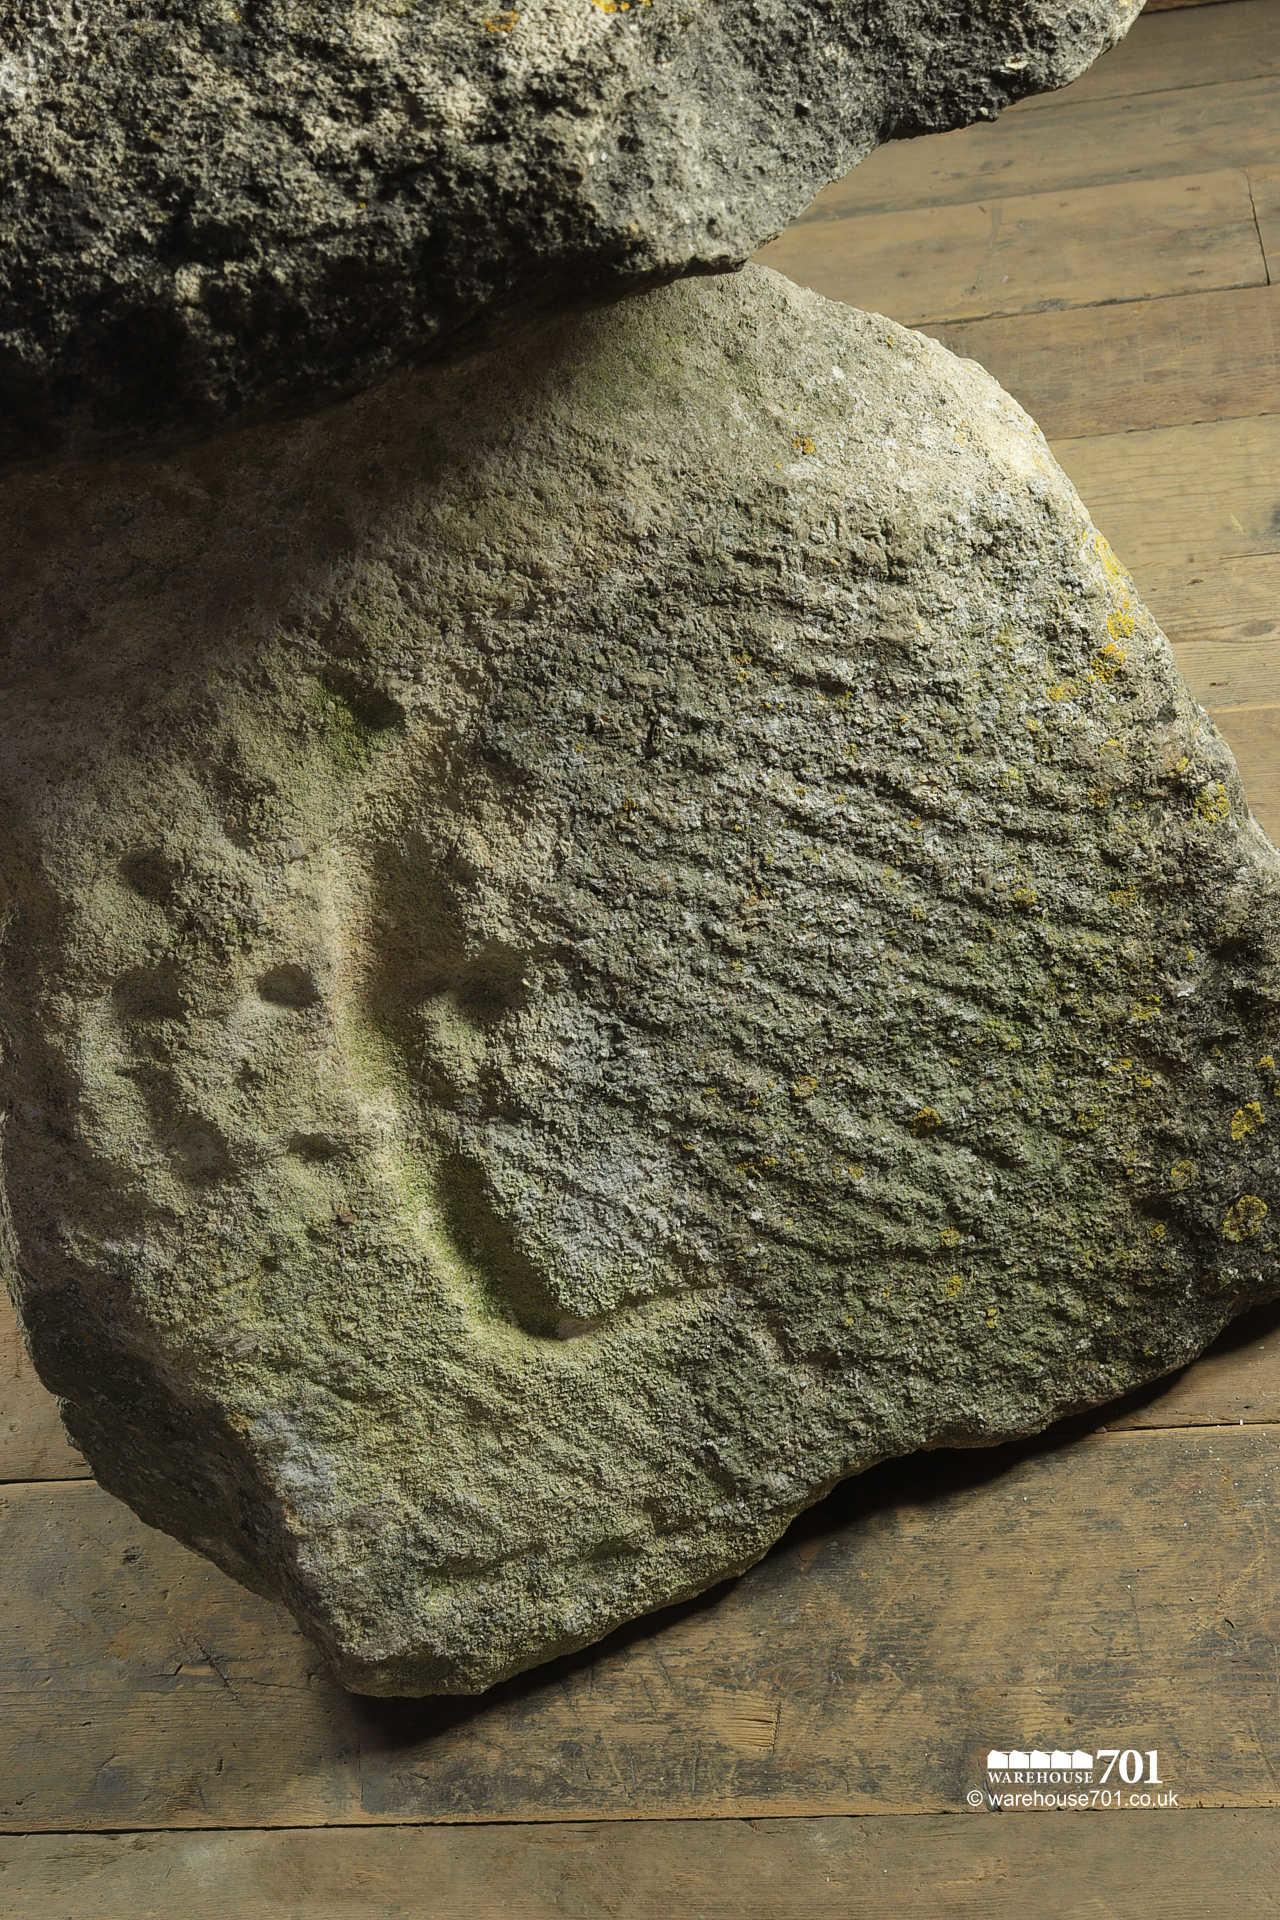 Unusually Marked Hand Carved Old Staddle Stone #3